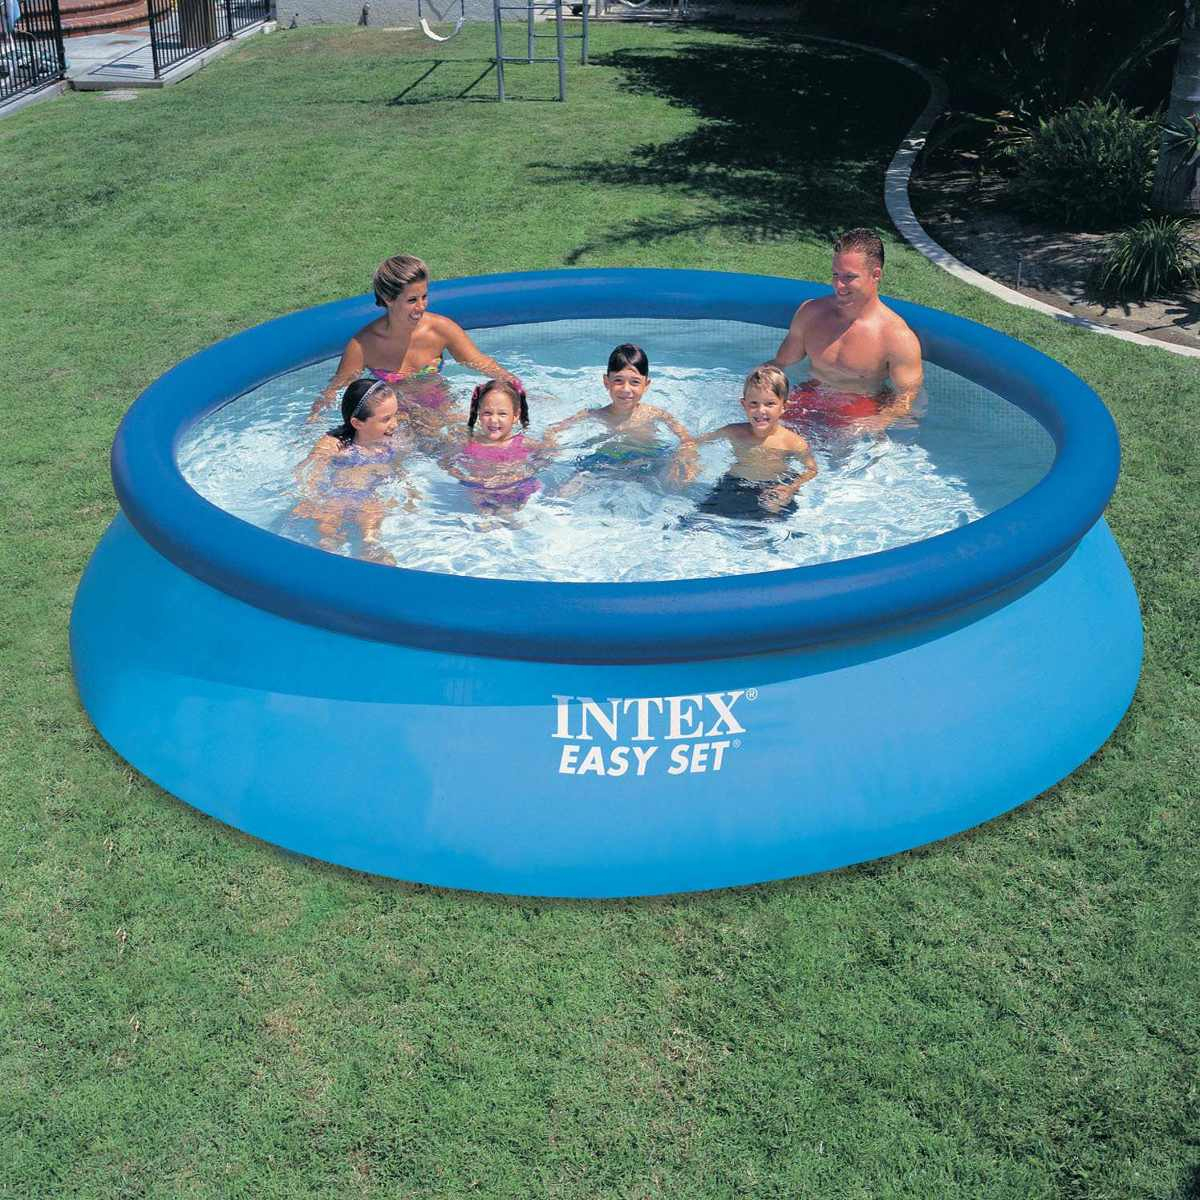 Piscina Inflable Familiar Intex 3.66Mx76Cm Con Filtro +Obseq concernant Piscine Intex 3.66